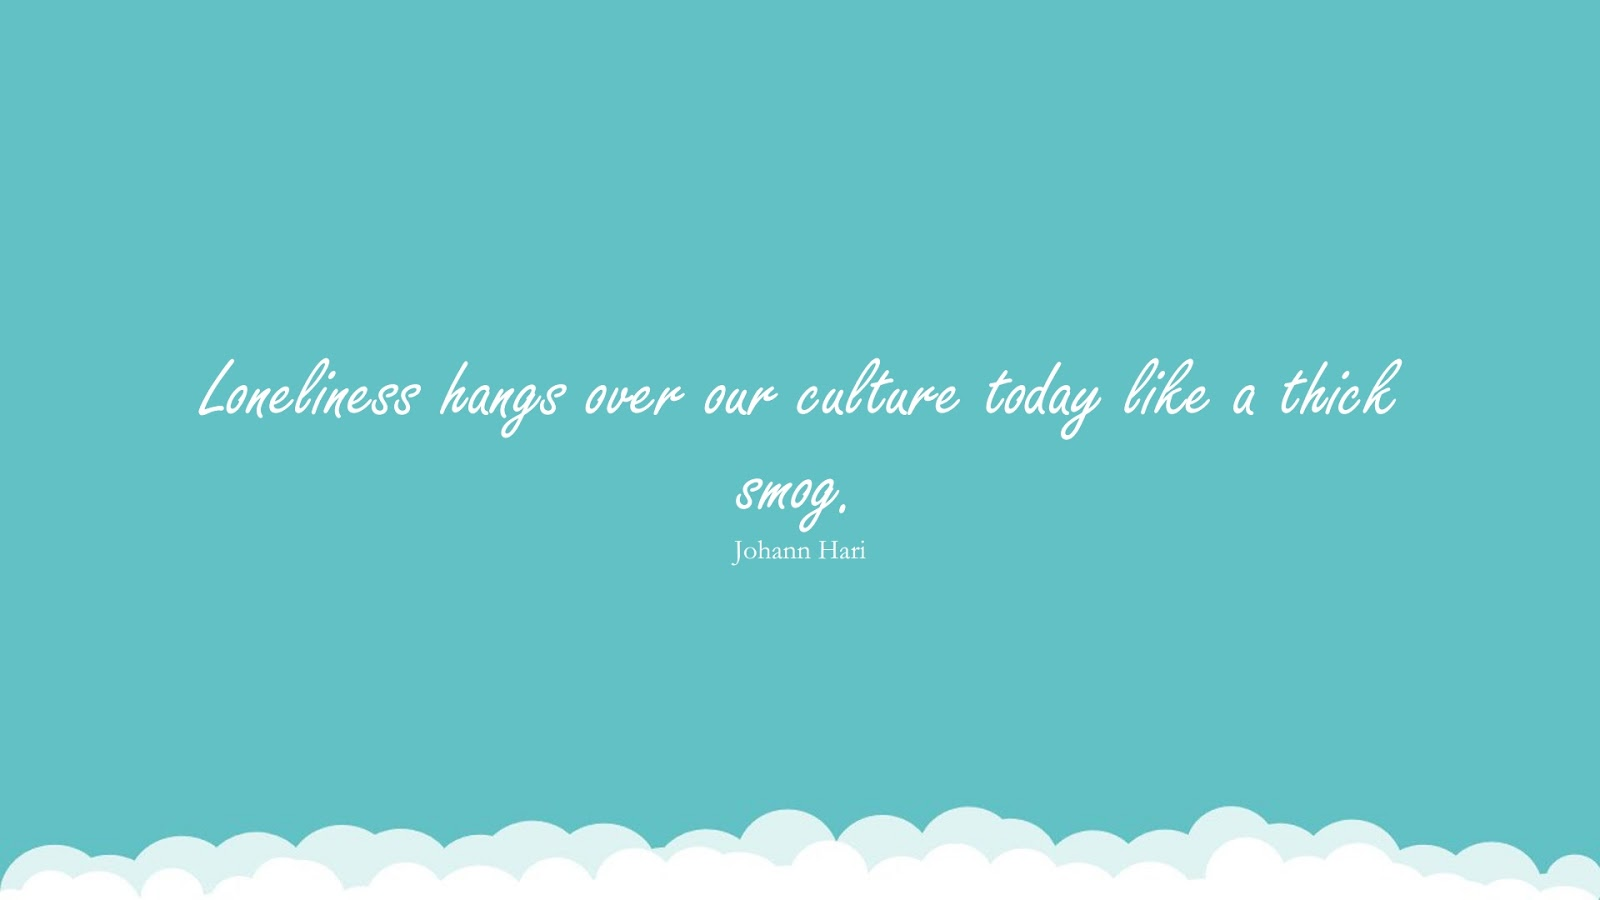 Loneliness hangs over our culture today like a thick smog. (Johann Hari);  #DepressionQuotes